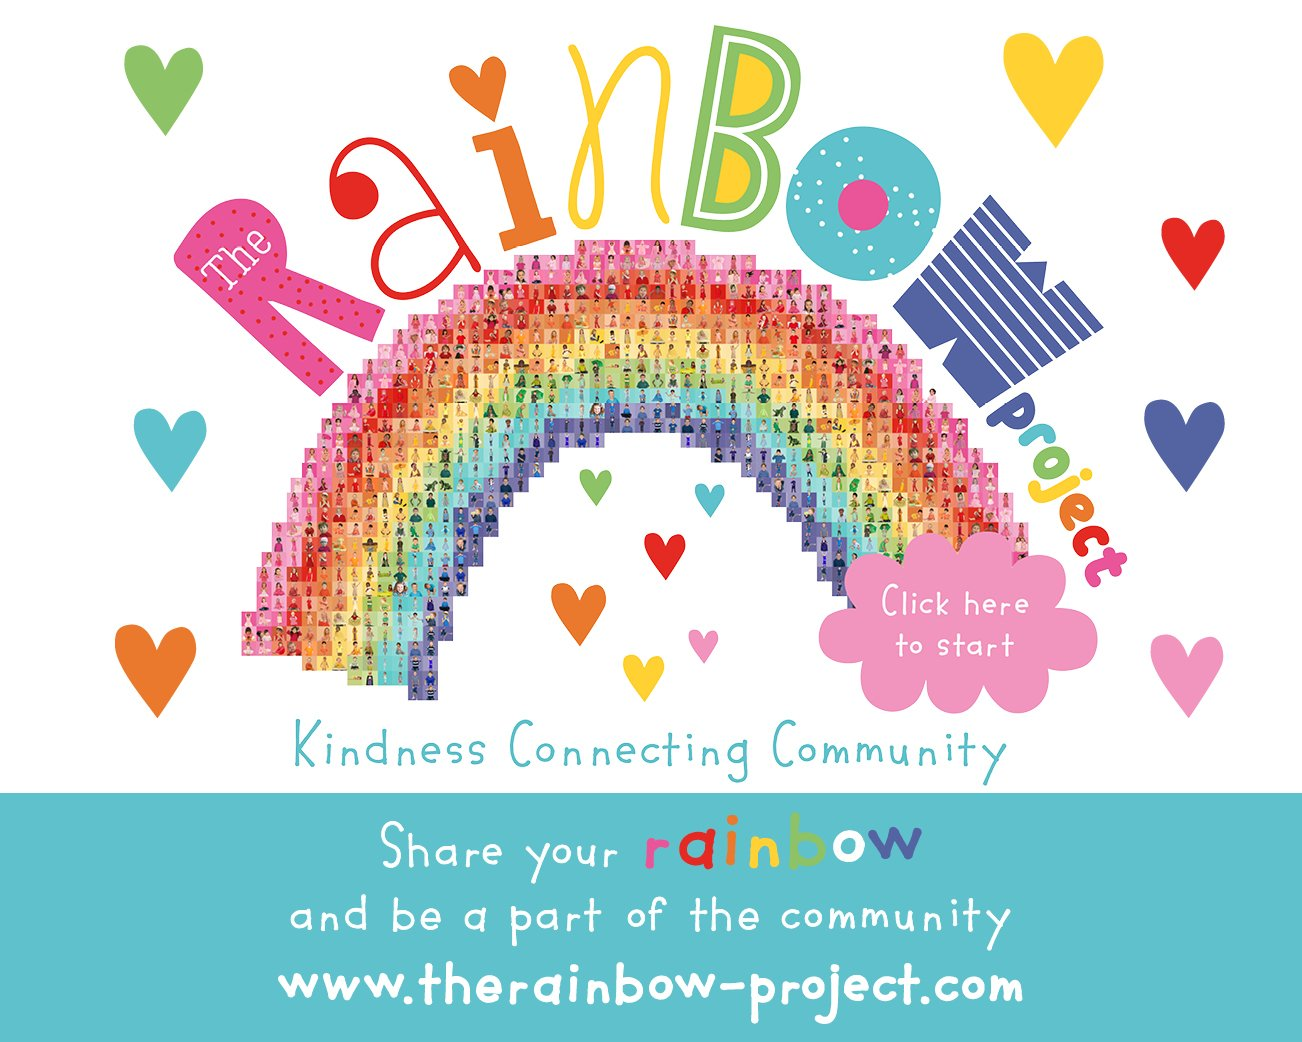 The Rainbow Project - Click here to start